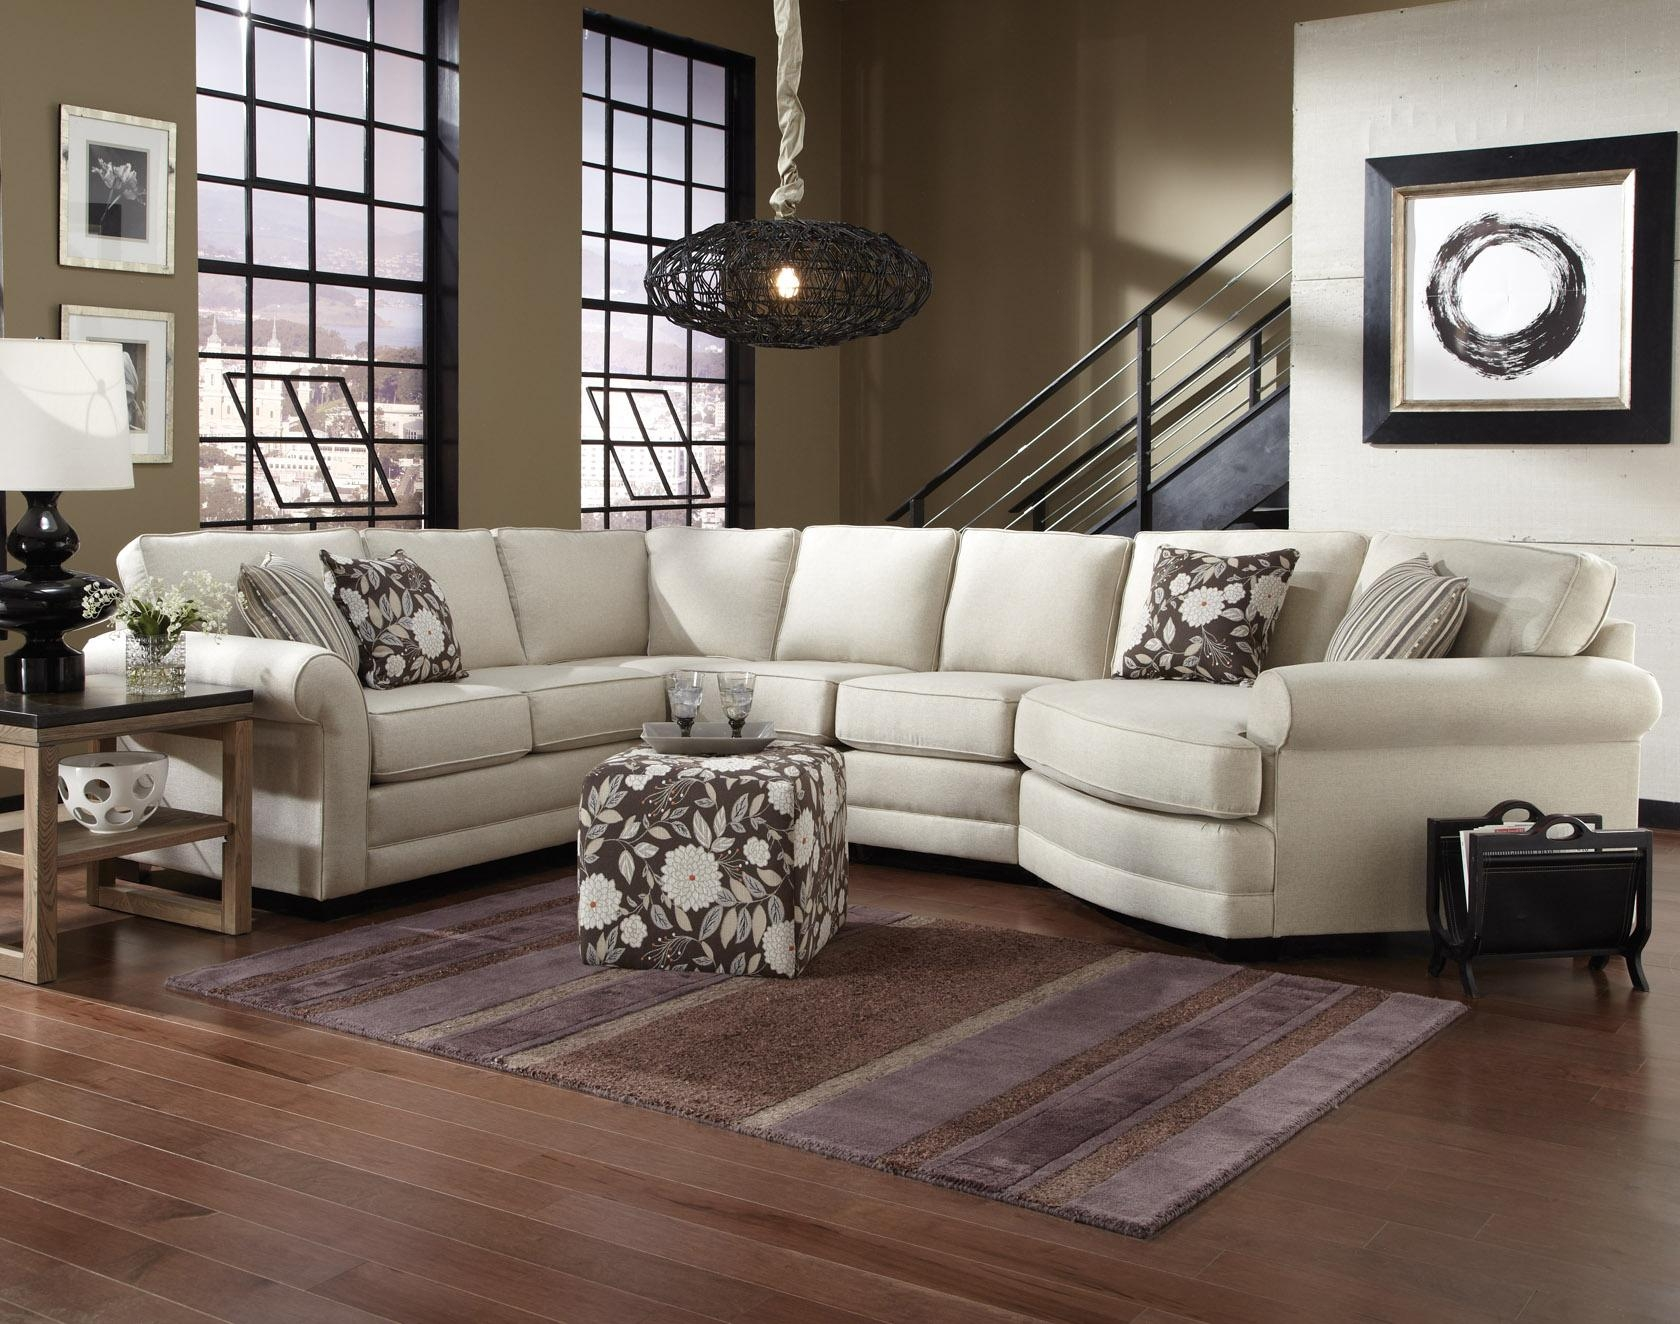 12 photo of 7 seat sectional sofa for Sofa 7 seater